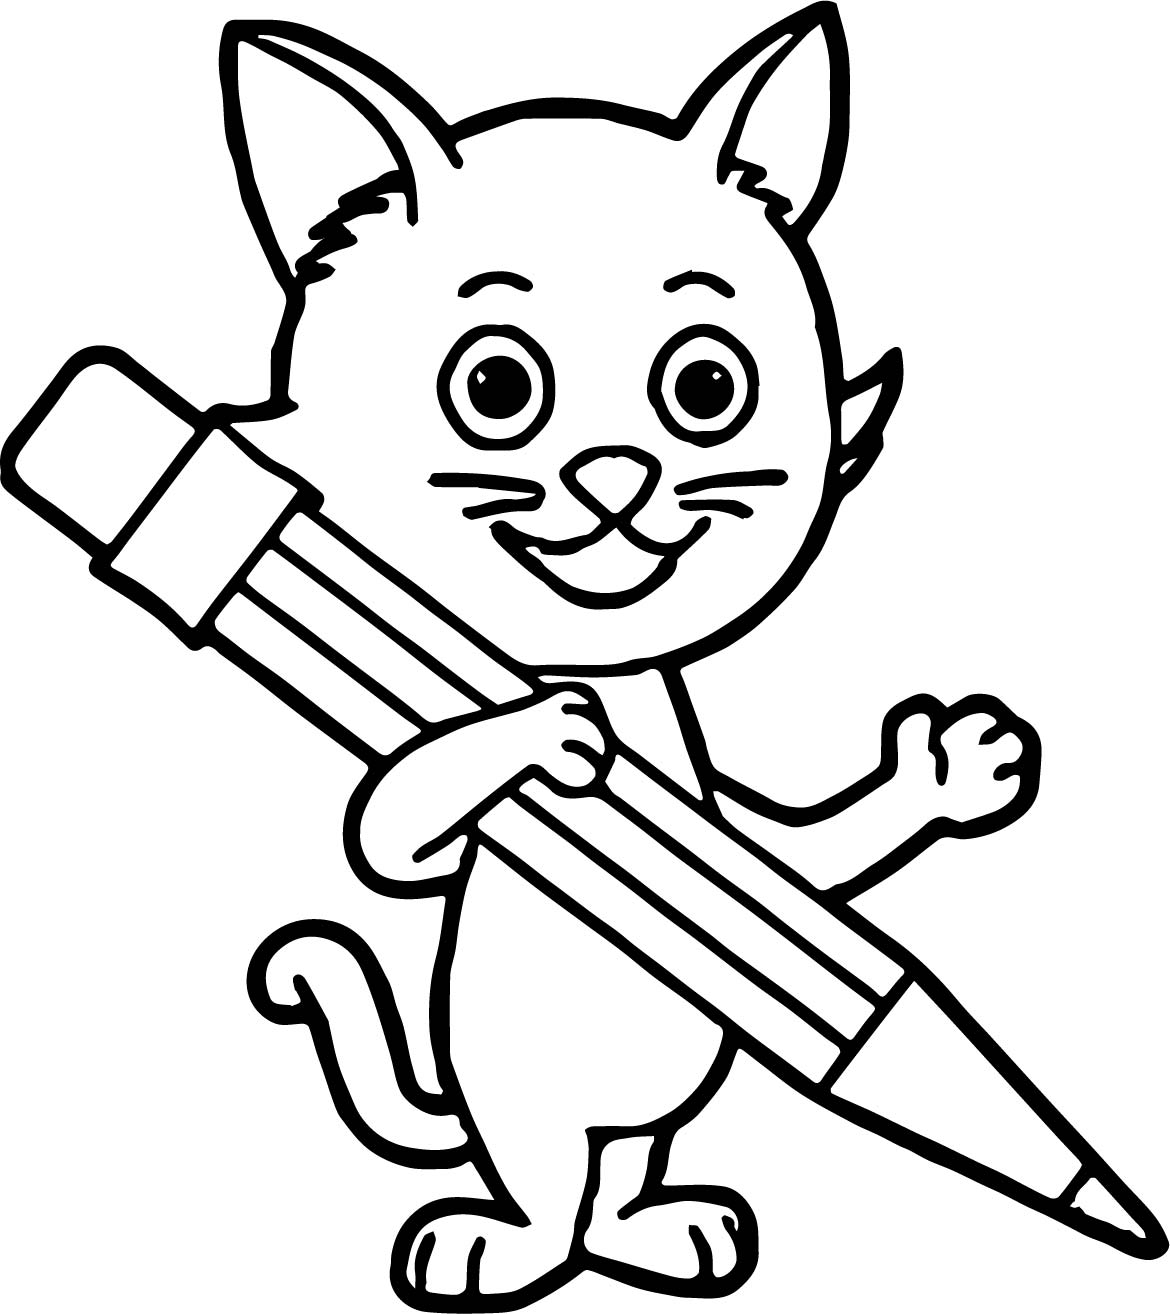 Coloring Pages For Writing : Coloring pages for writing tulips letter paper